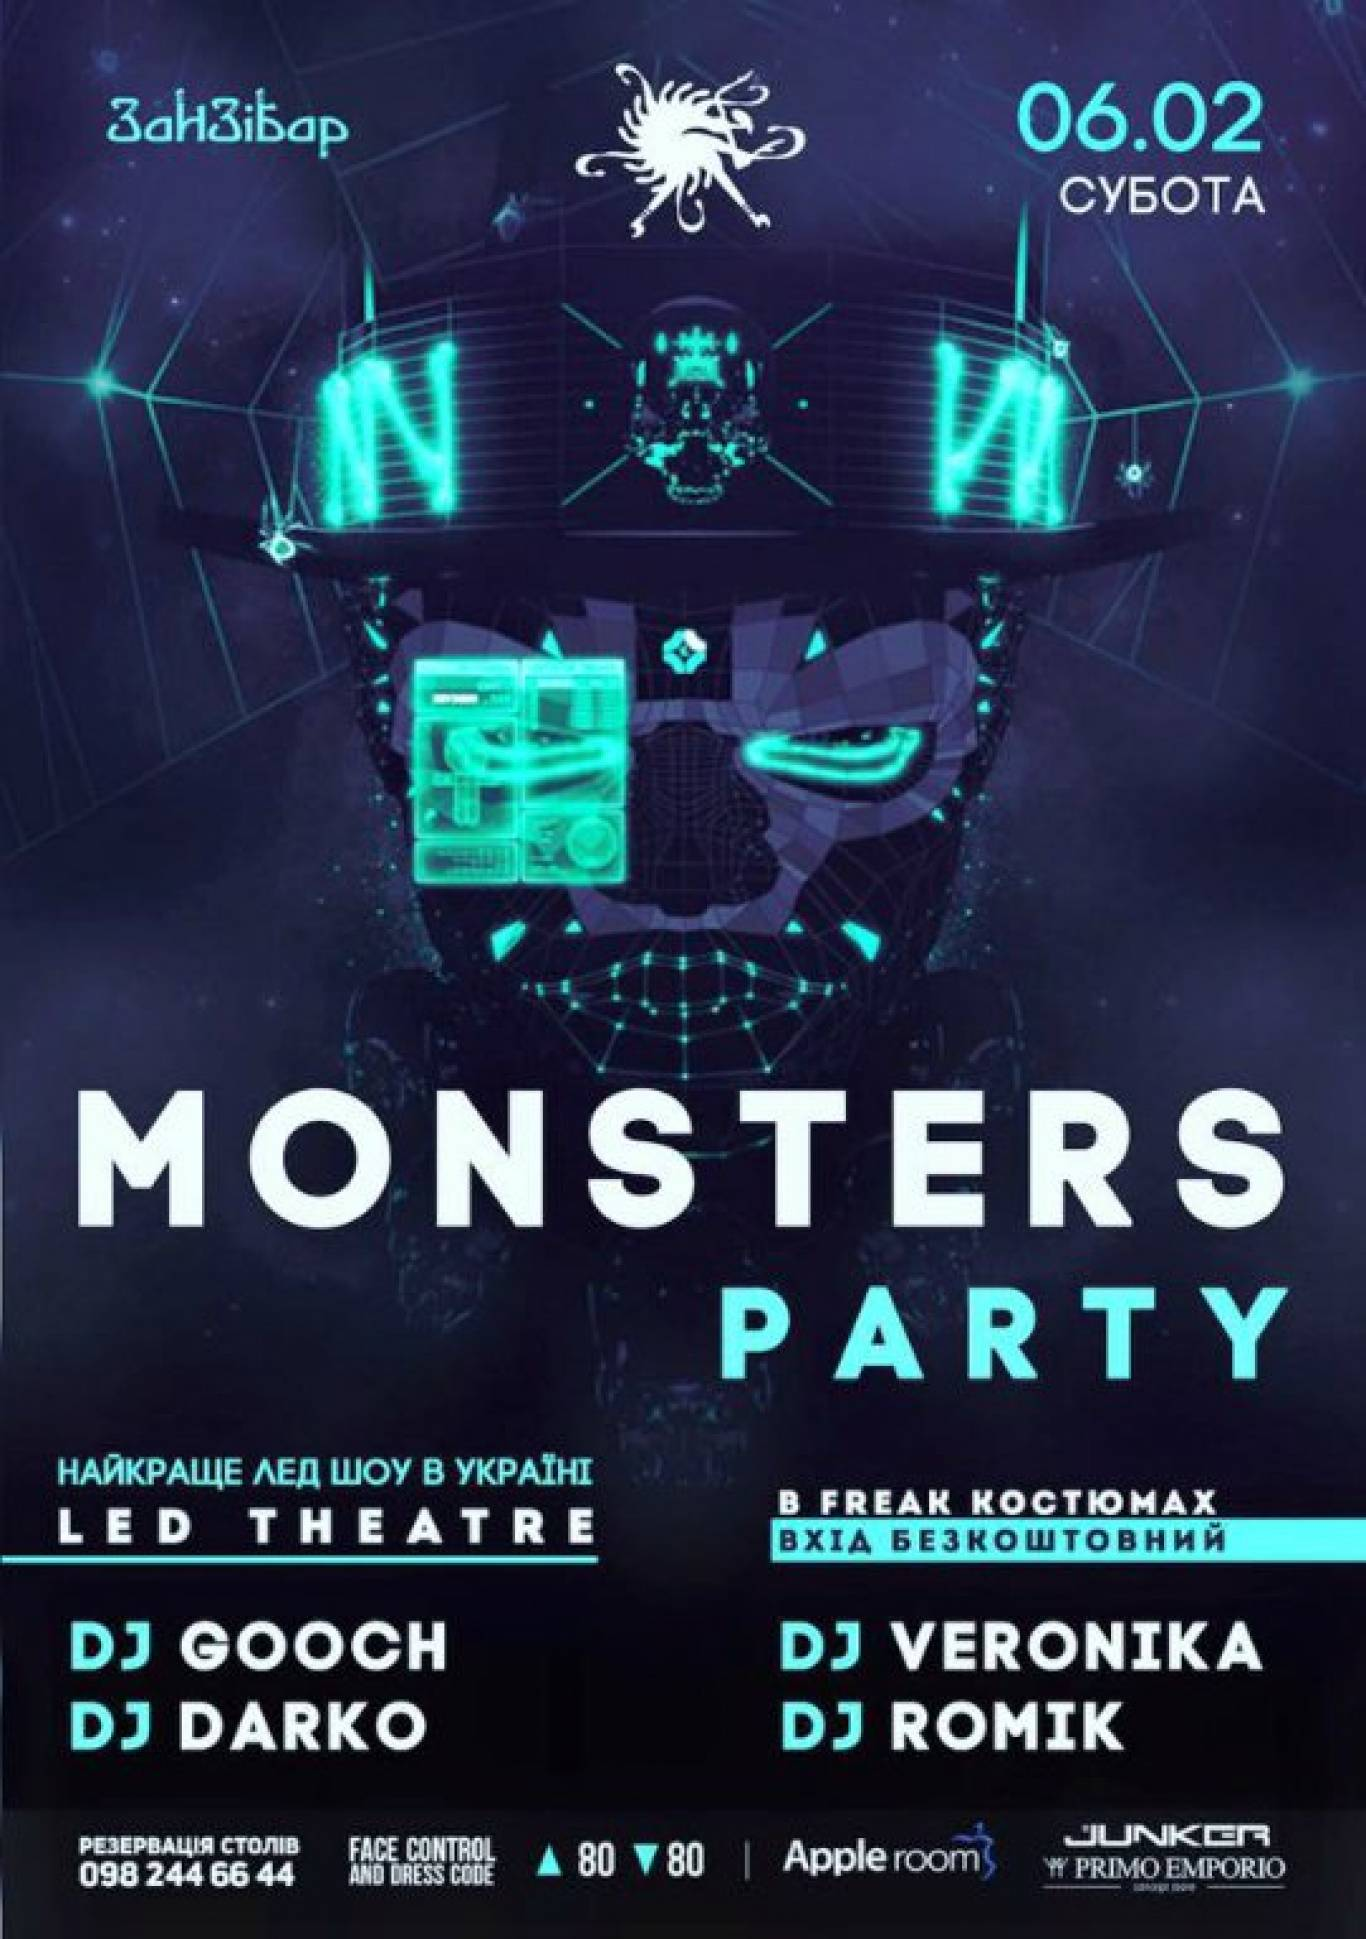 Вечірка Monsters party